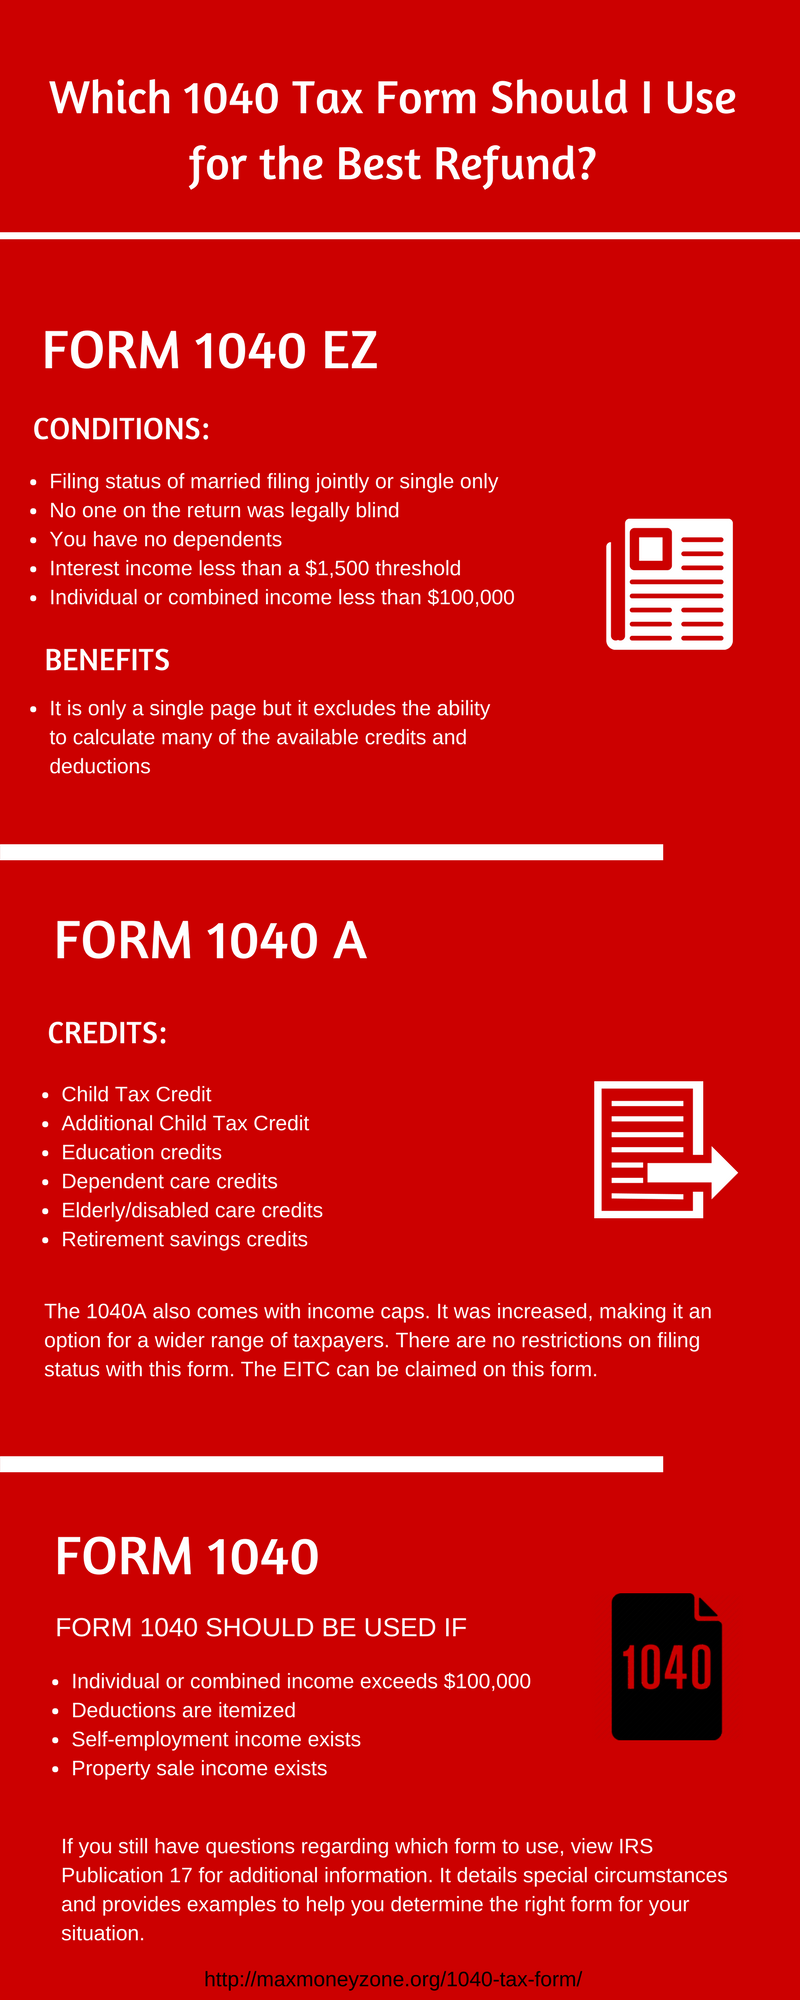 Irs form 433 f collection information statement download this form irs form 433 f collection information statement download this form at httpfreshstarttaxirs forms or call us now for a free consultat pinteres falaconquin